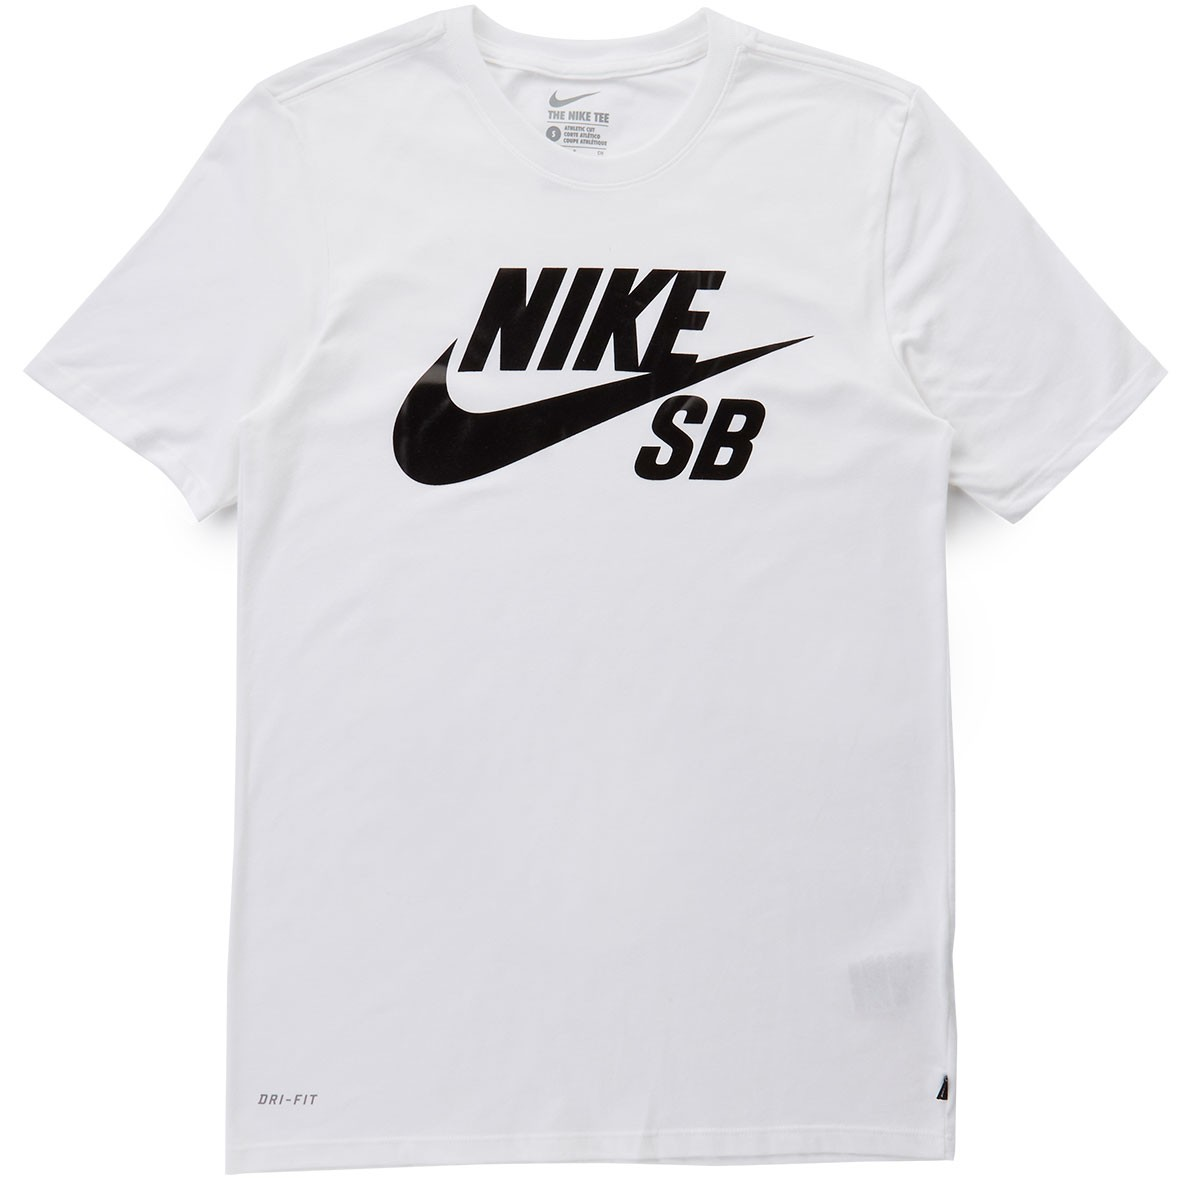 nike sb logo t shirt white white black. Black Bedroom Furniture Sets. Home Design Ideas